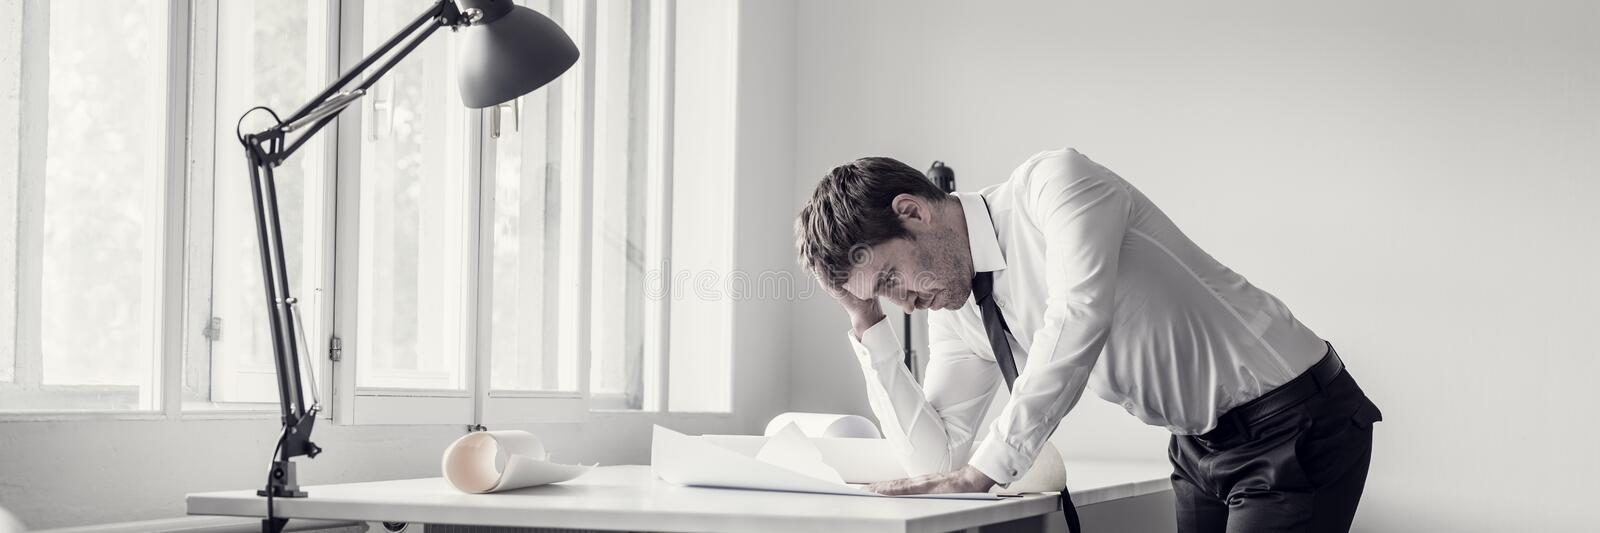 Frustrated business man analyzing plans stock images